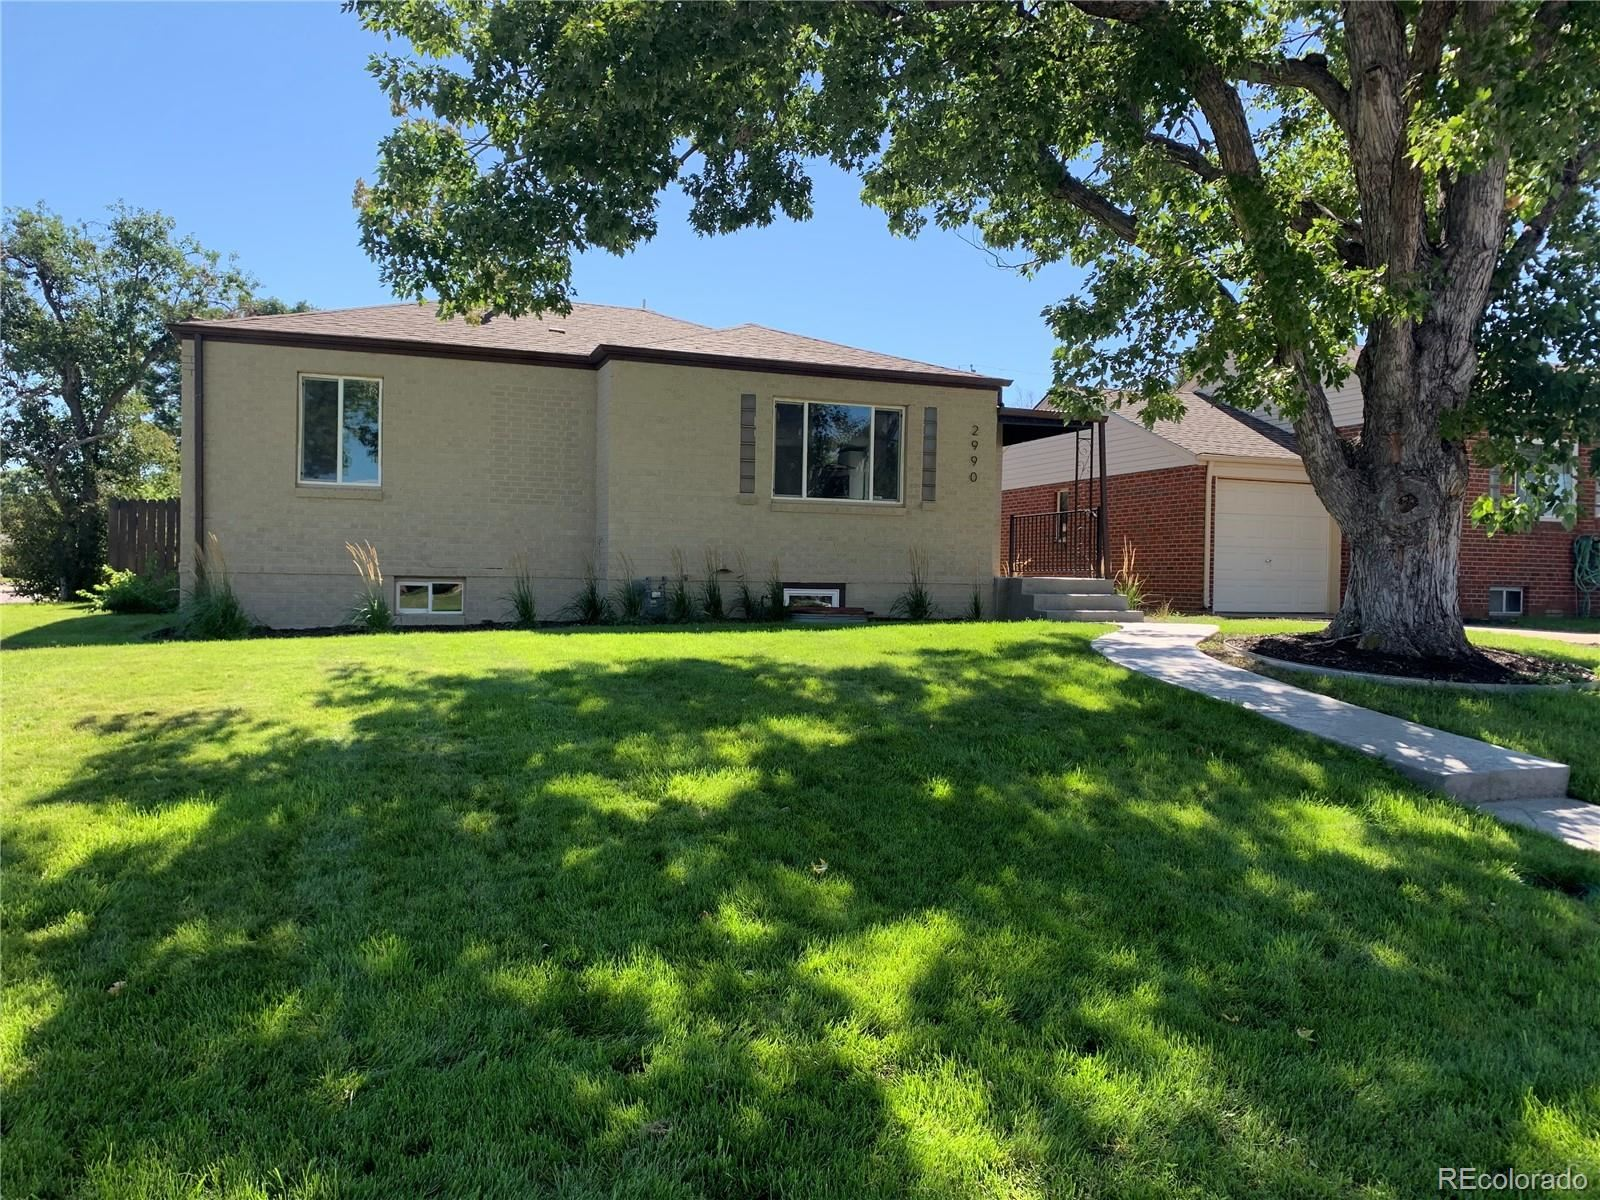 2990 Elm Street, Denver, CO 80207 - #: 8159922